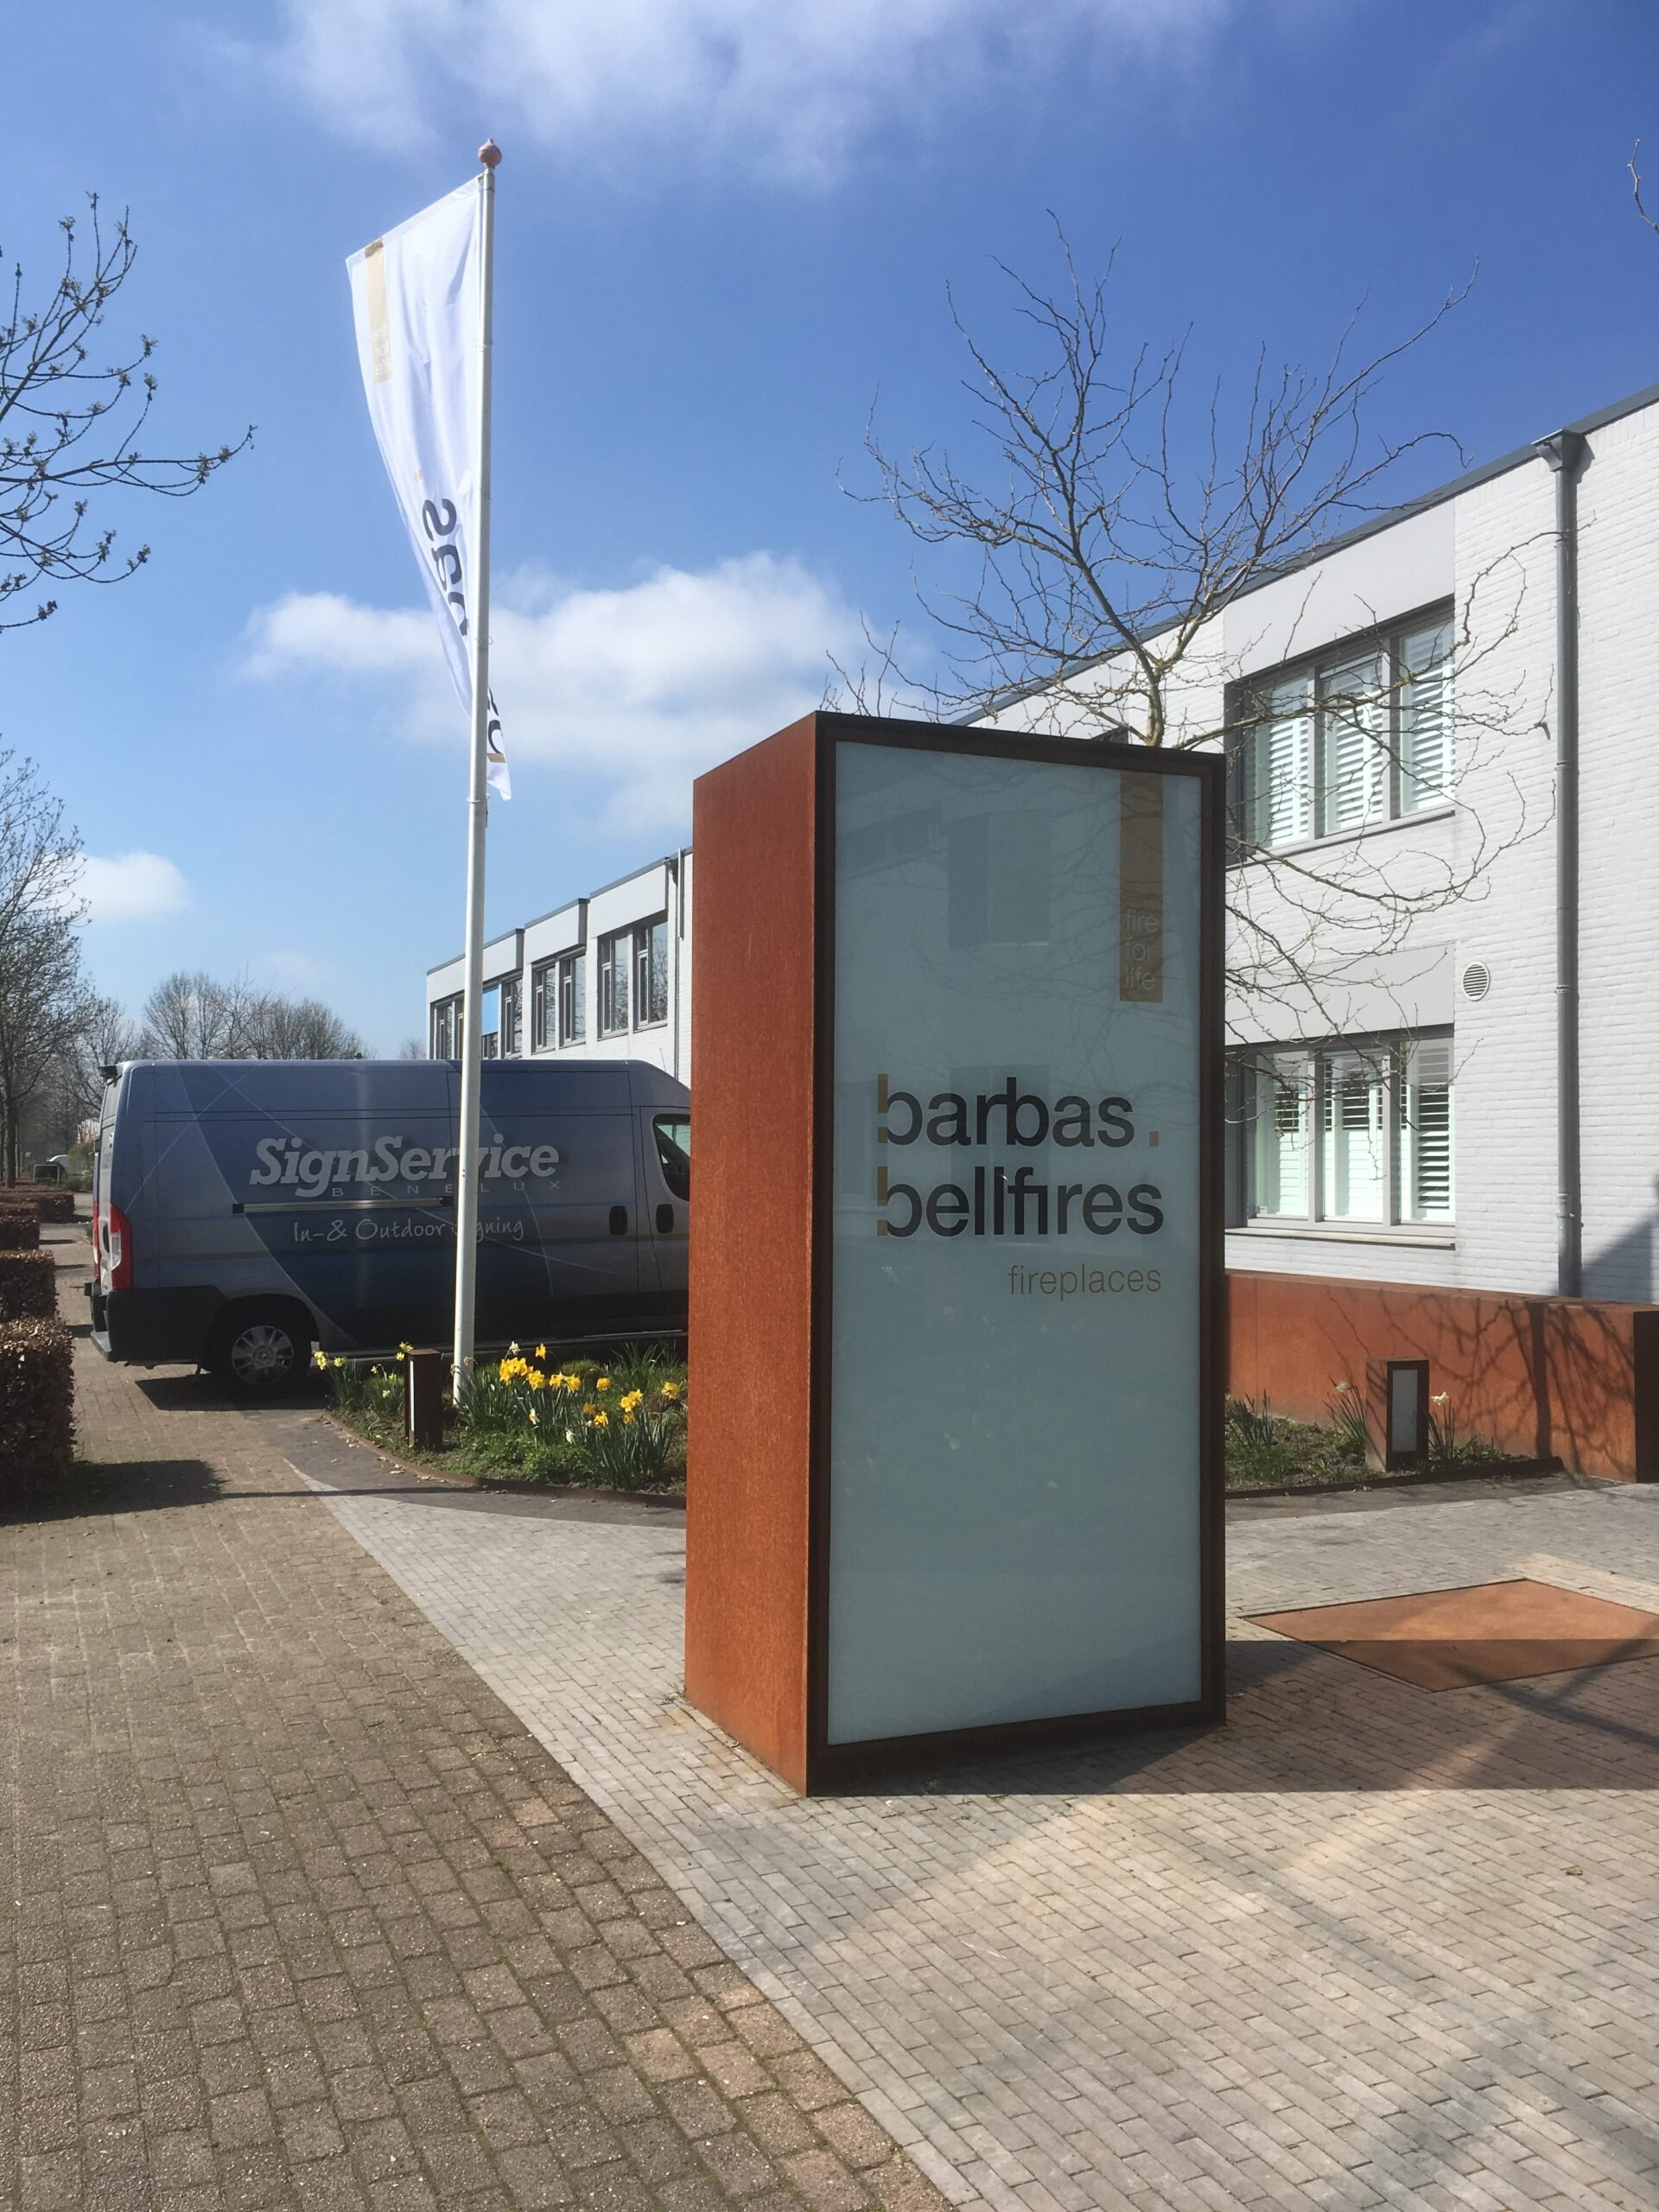 30 Barbas Bellfires Zuilreclame wit